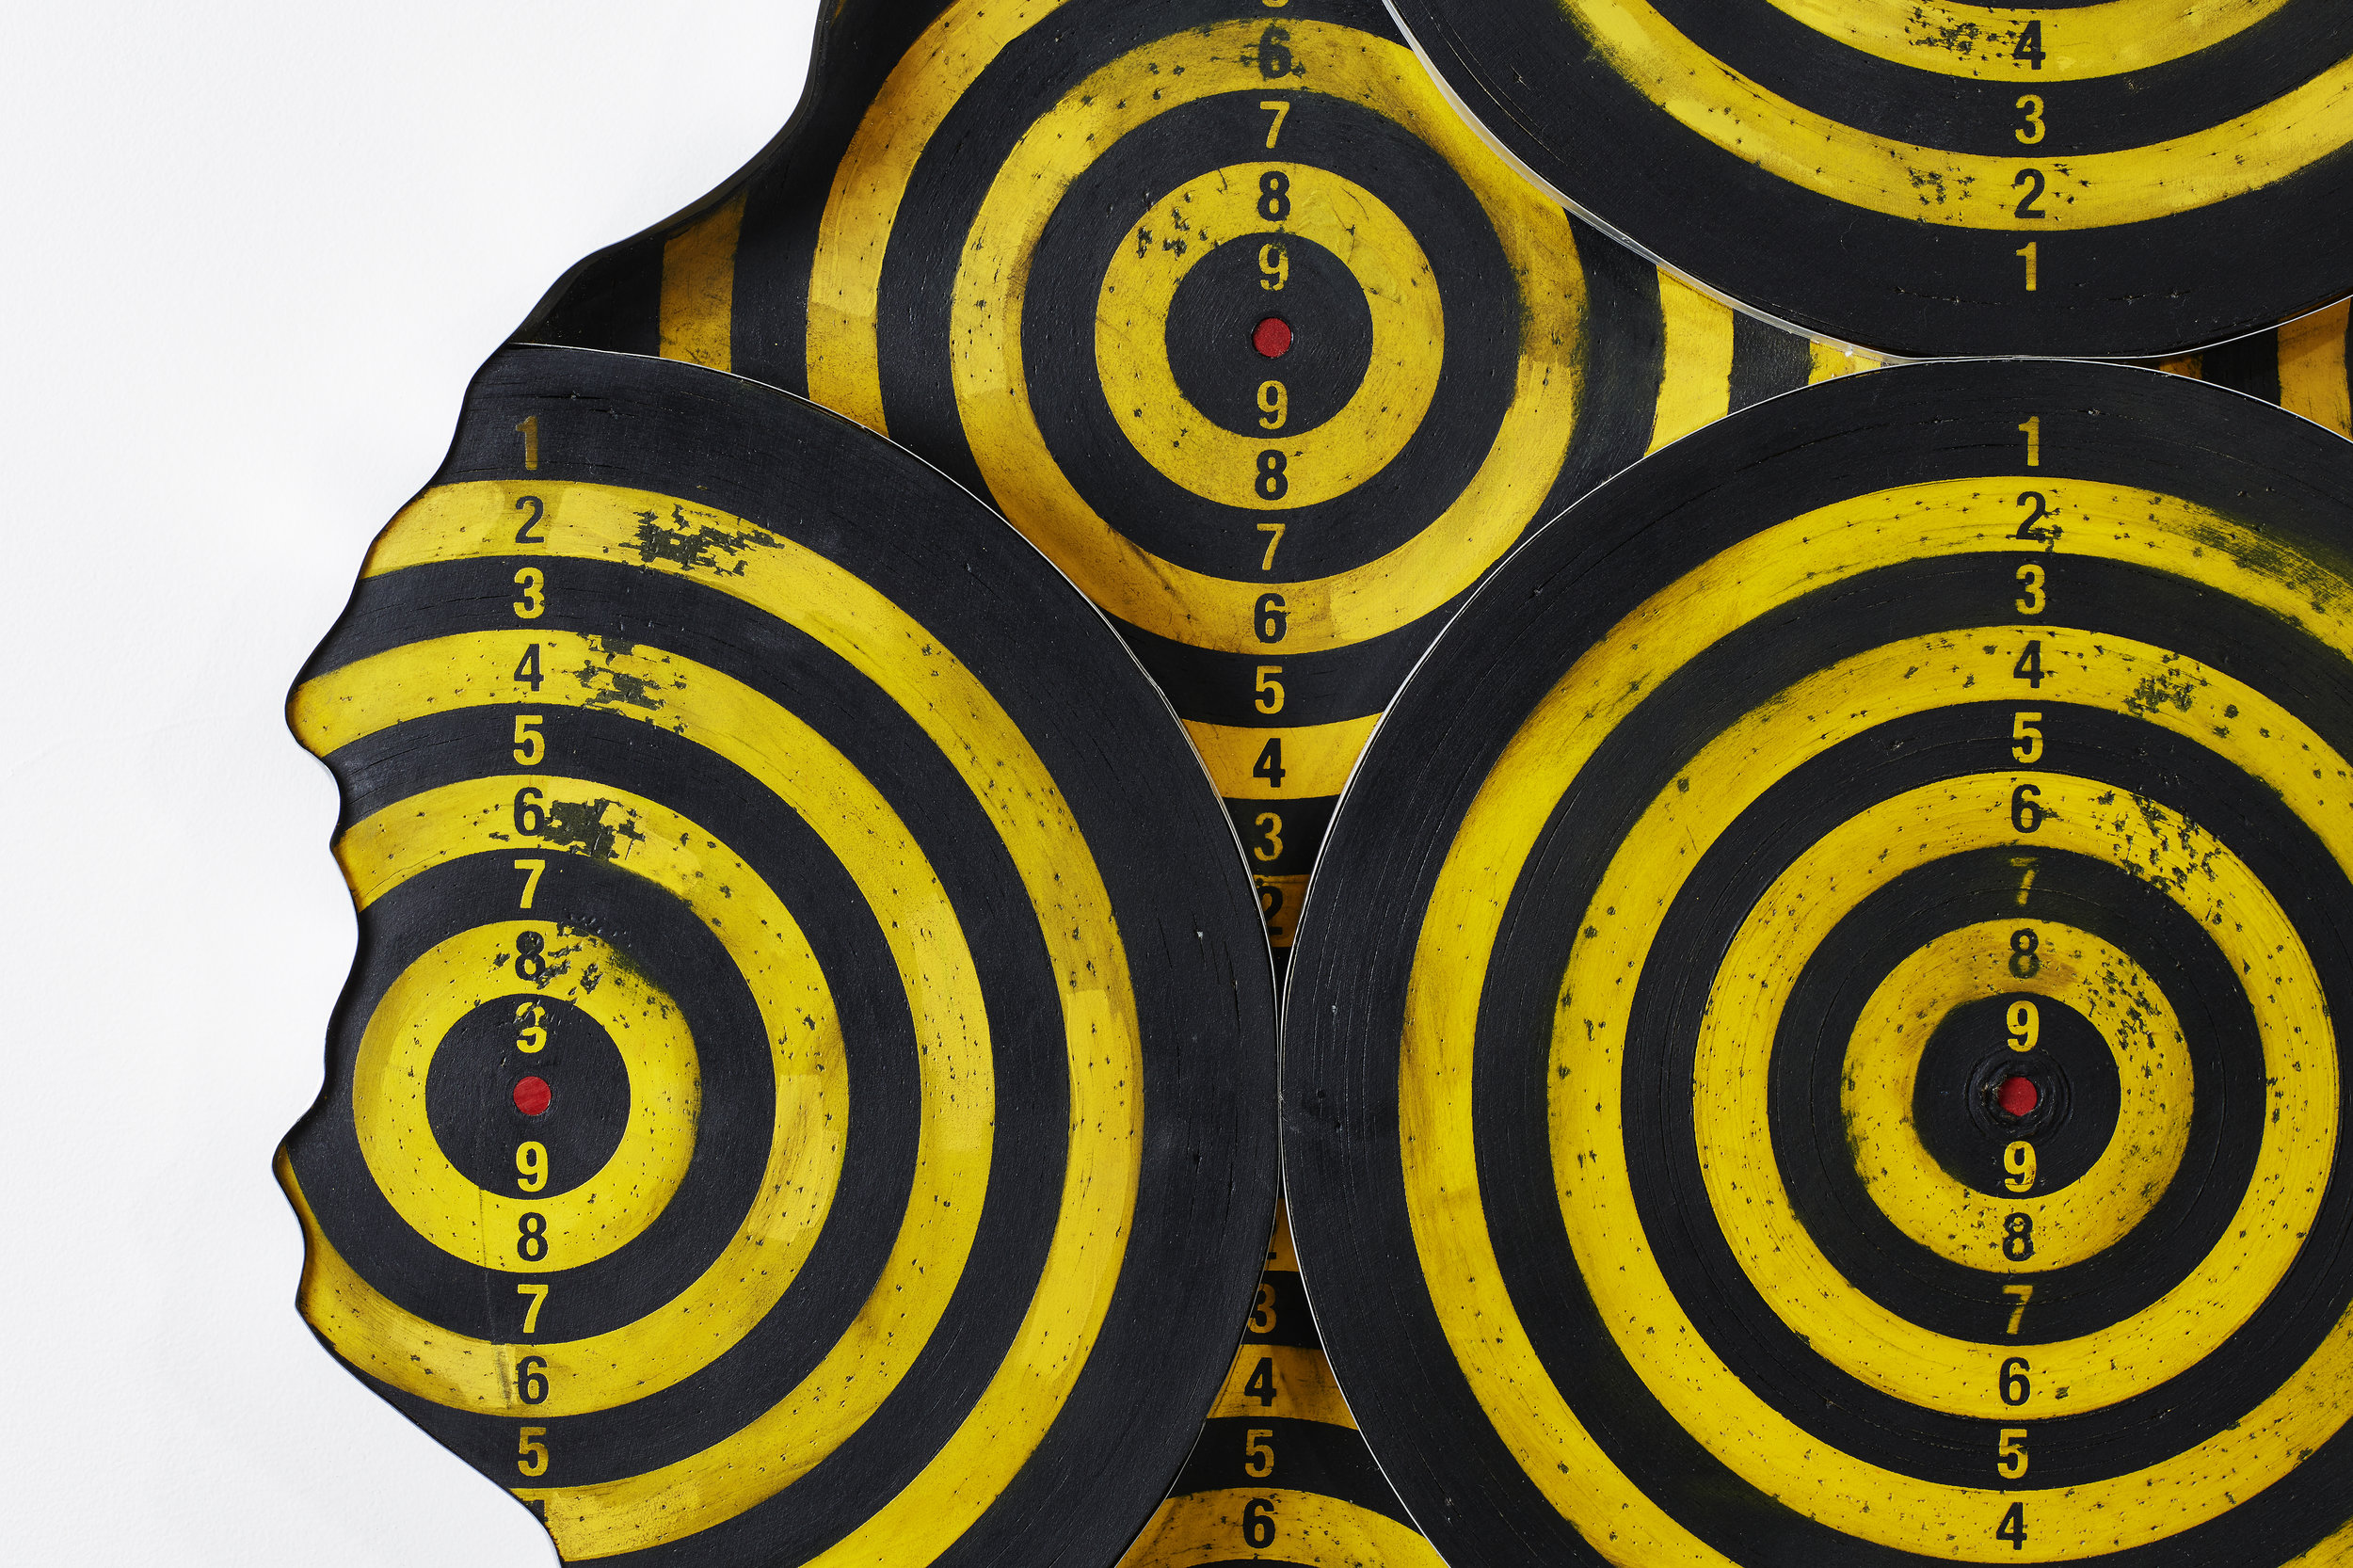 - The composition was made from authentic dartboards, water-jetted and finished with steel edging.